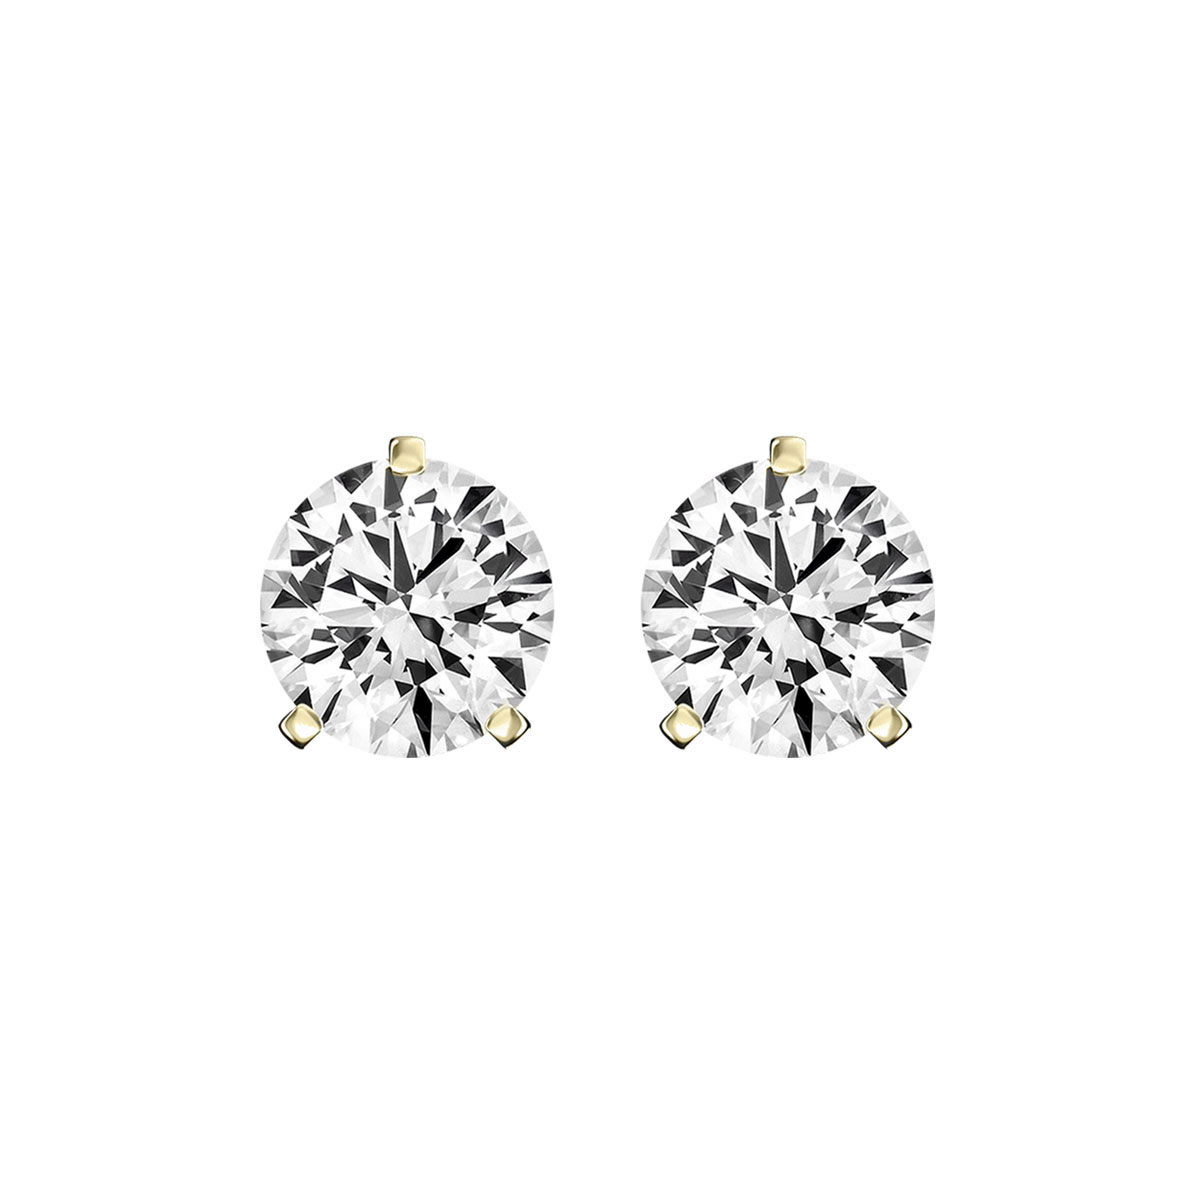 14K Yellow Gold Diamond Stud Earrings ( 1/4 ct. tw)